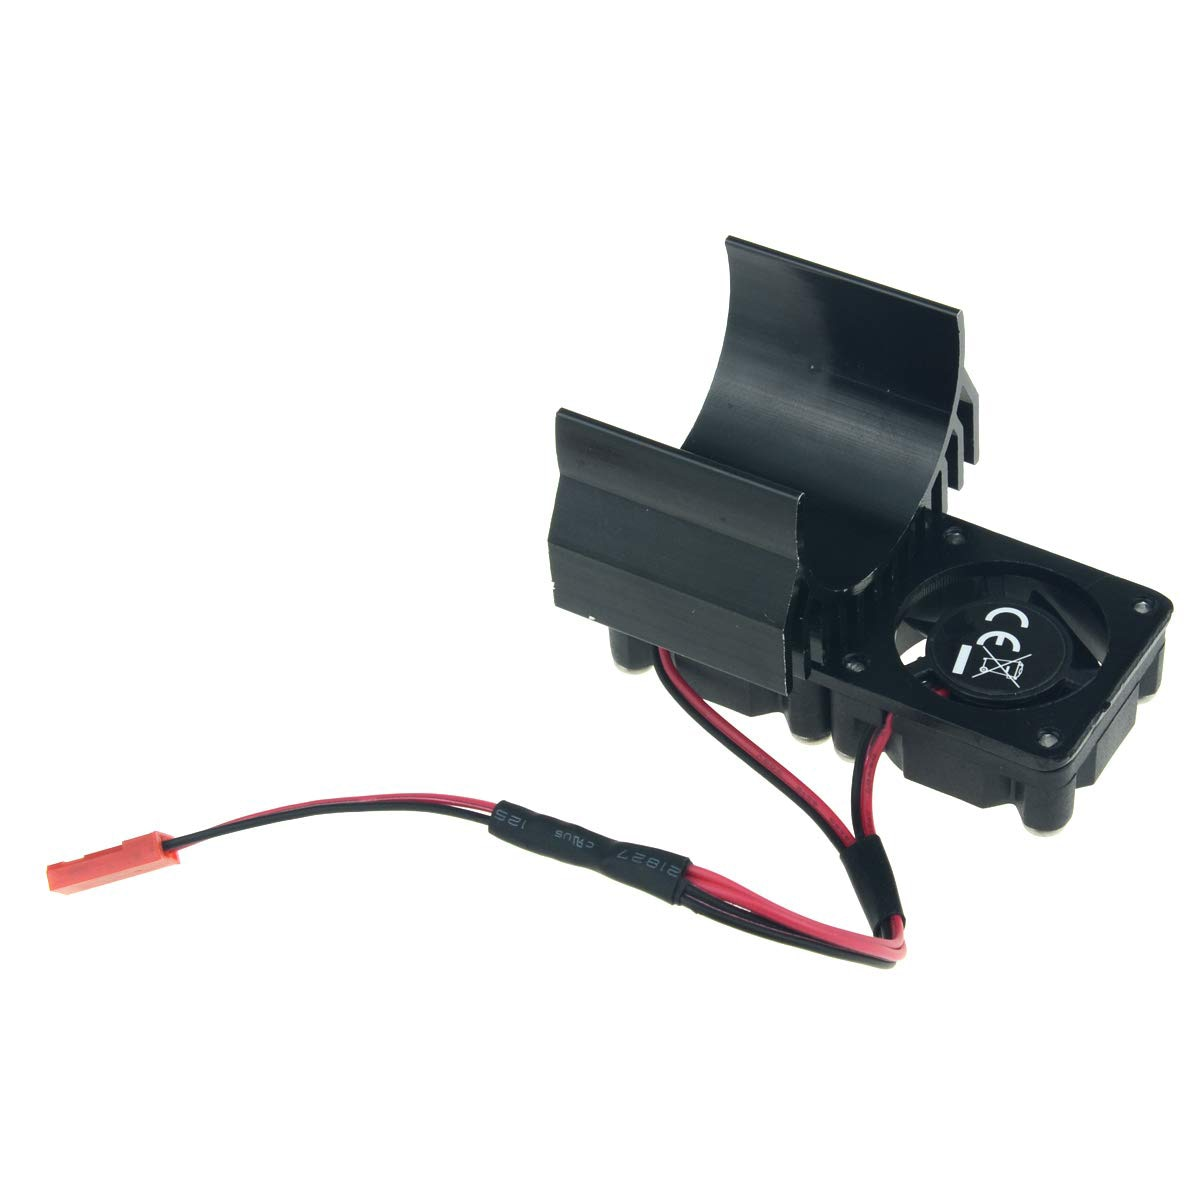 RC1/10 Auto Parts RC 540/550 Motor Aluminum Radiator Dual 30 mm Cooling Fan for HPI Truck Rock Track Traxxas 1/10 Slash rc Model enlarge